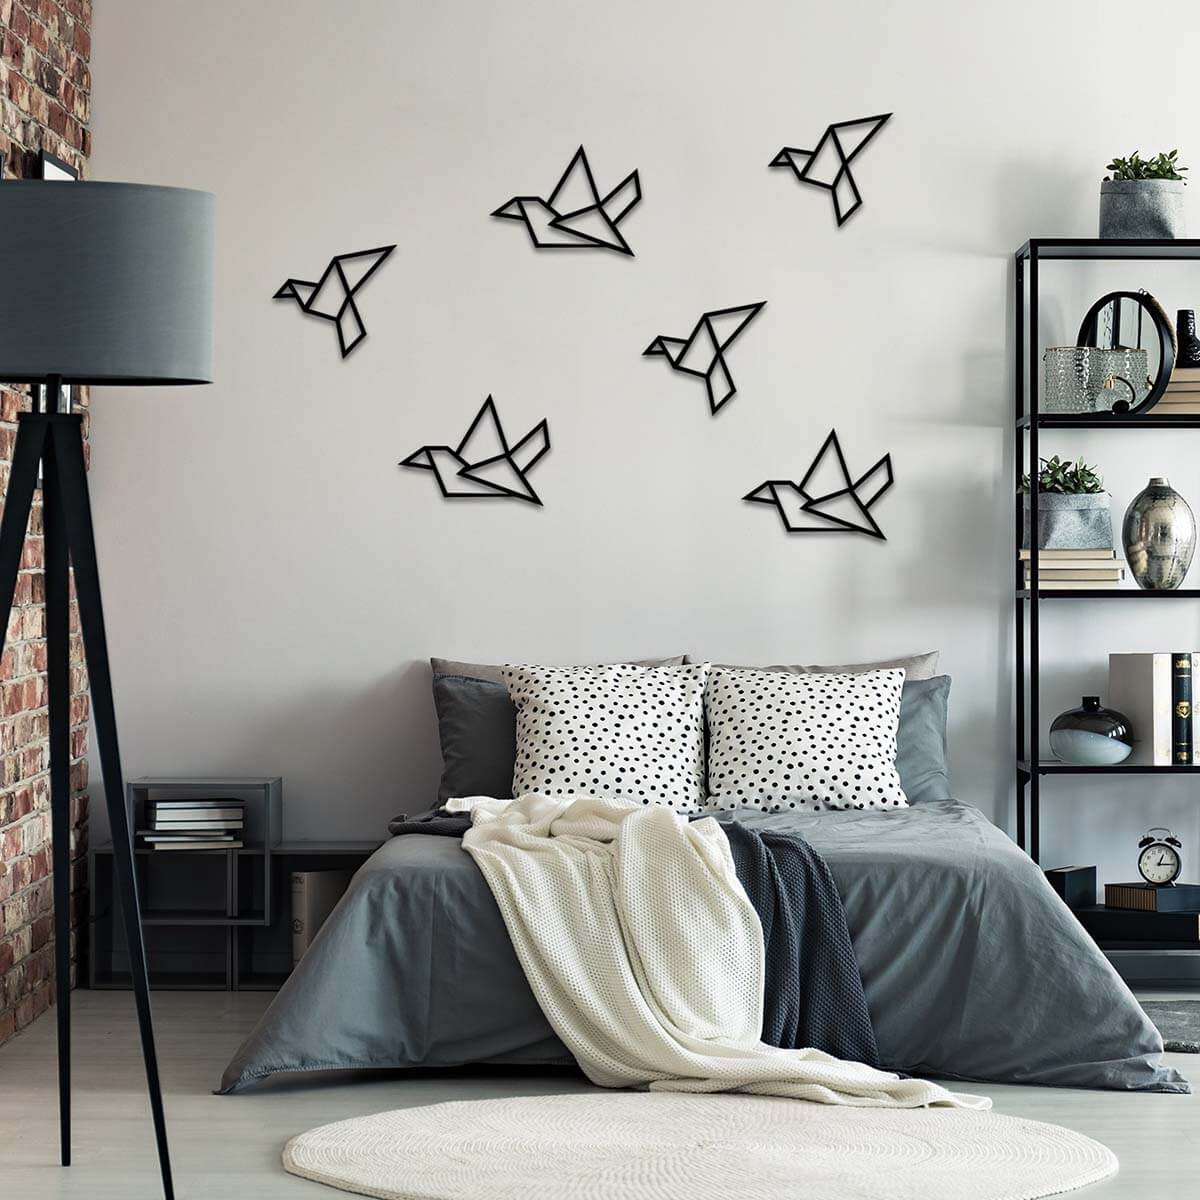 Metal Wall Art in Geometric Bird Shapes